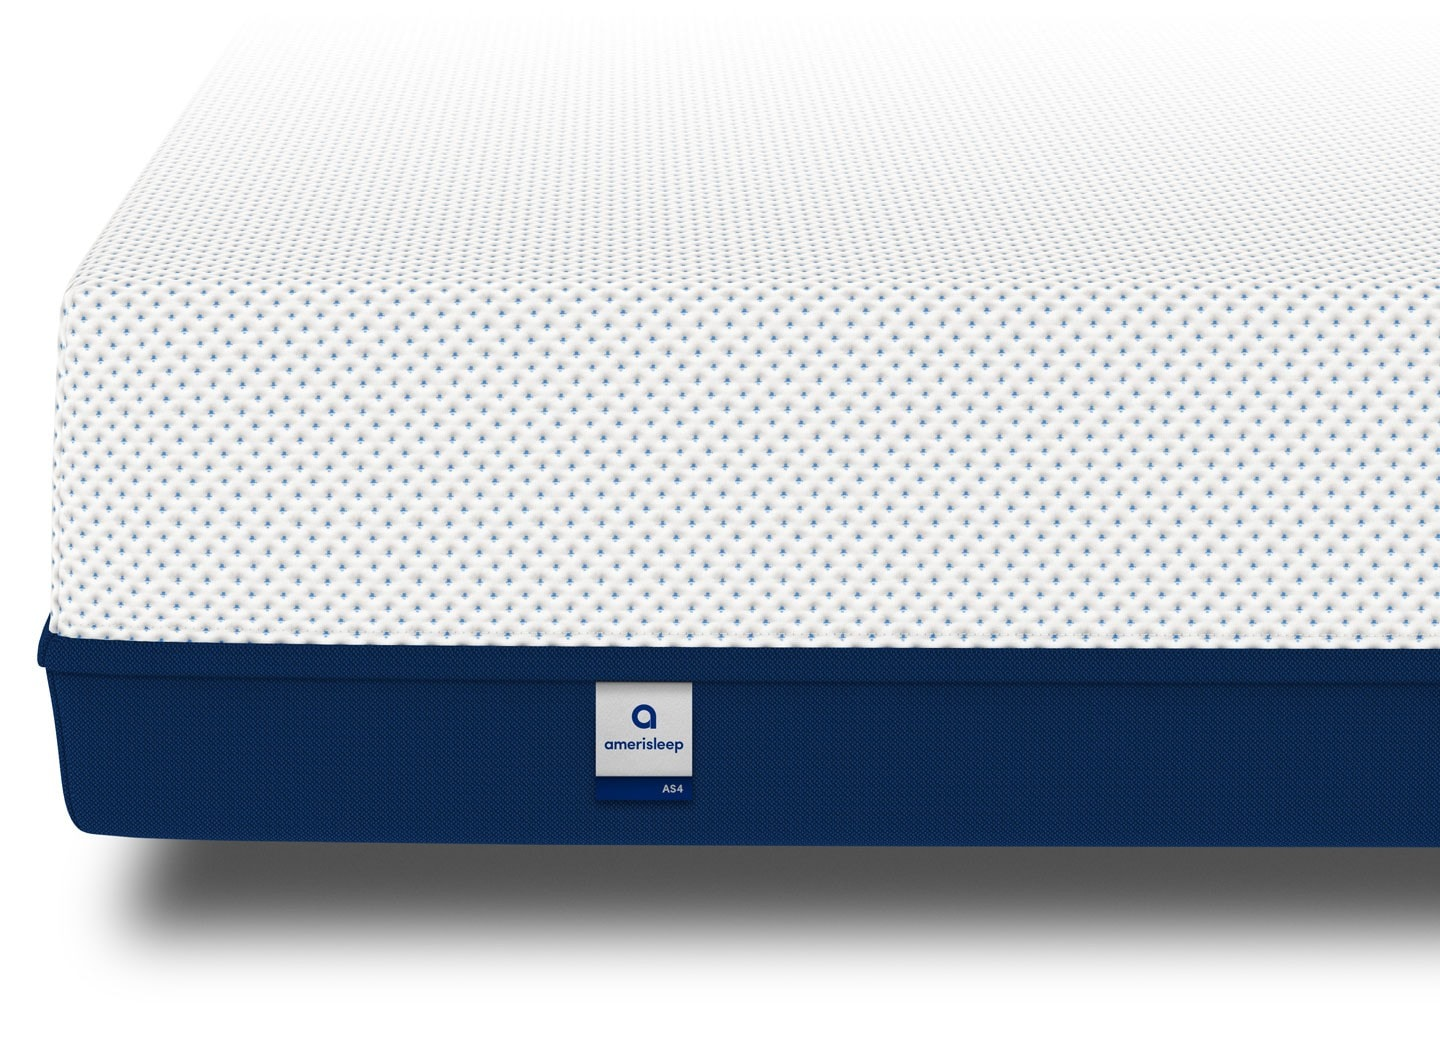 amerisleep as4 mattress review